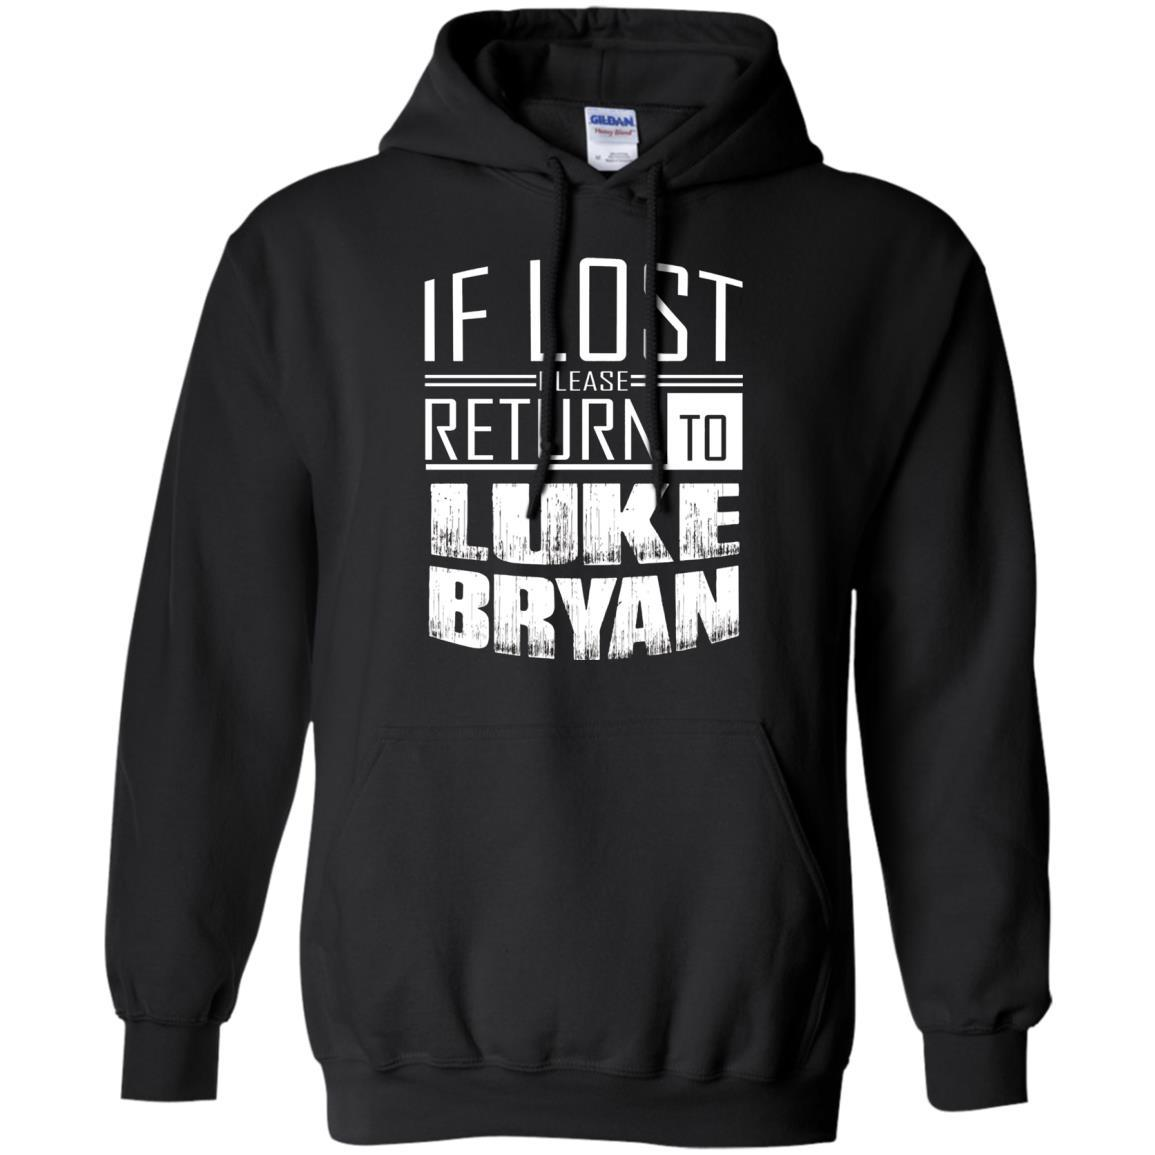 if lost please return to luke name bryan - Pullover Hoodie Black / 5XL